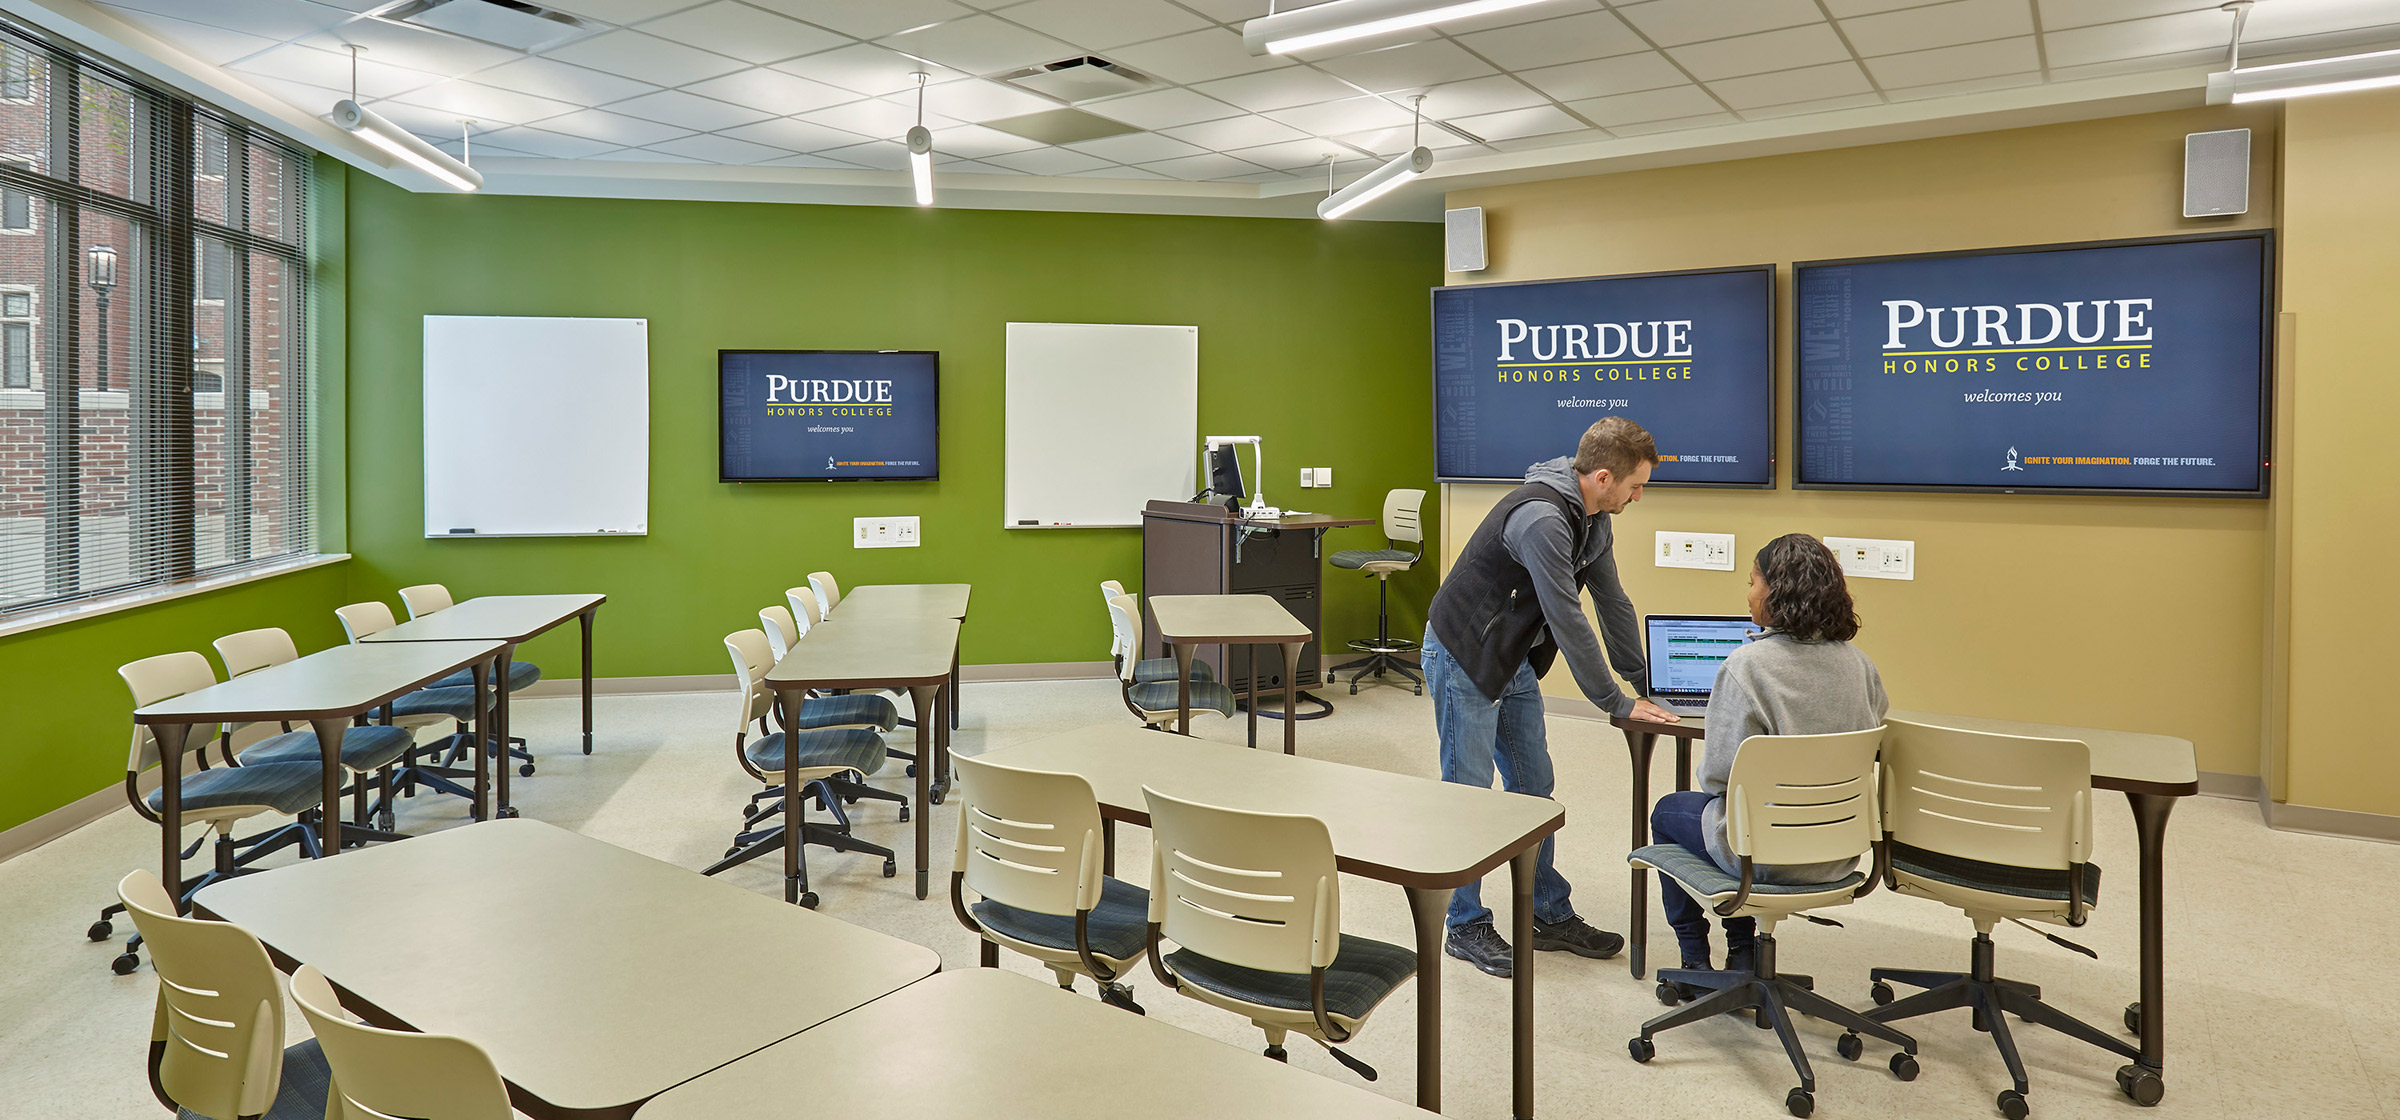 purdue university honors college residences design 27